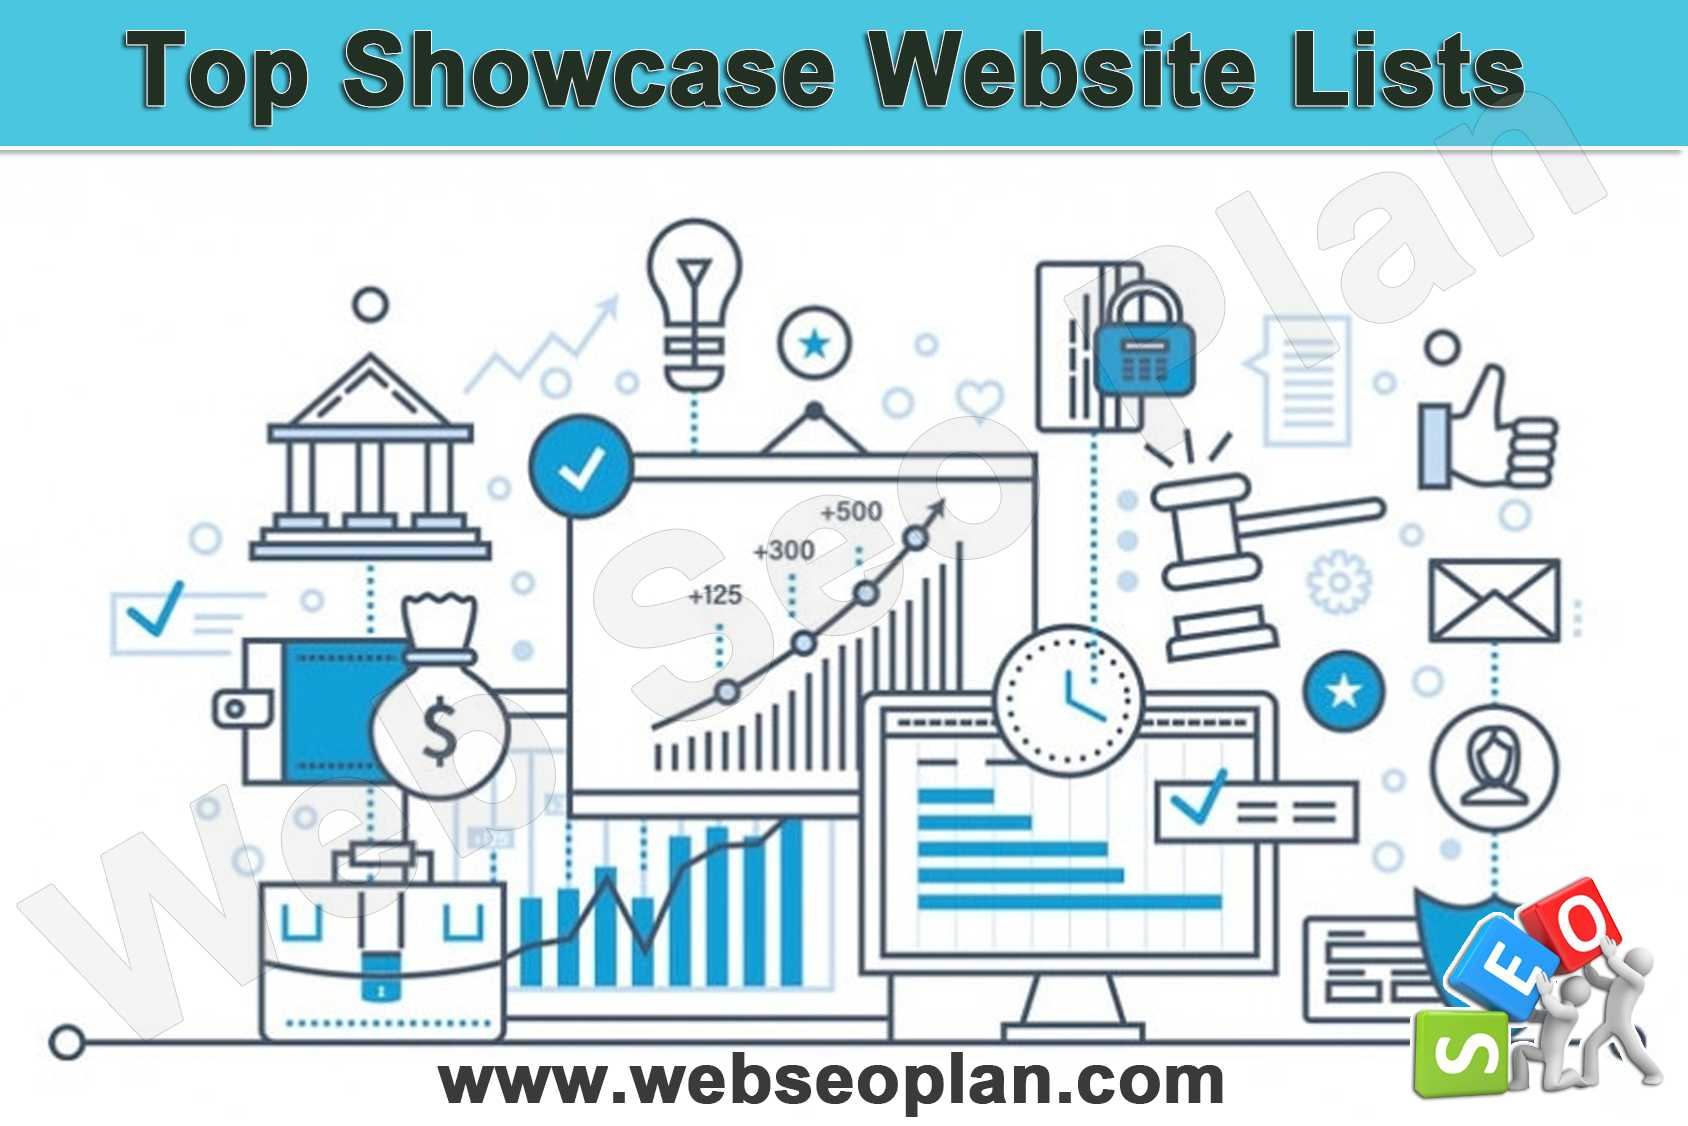 Top Showcase Site Lists